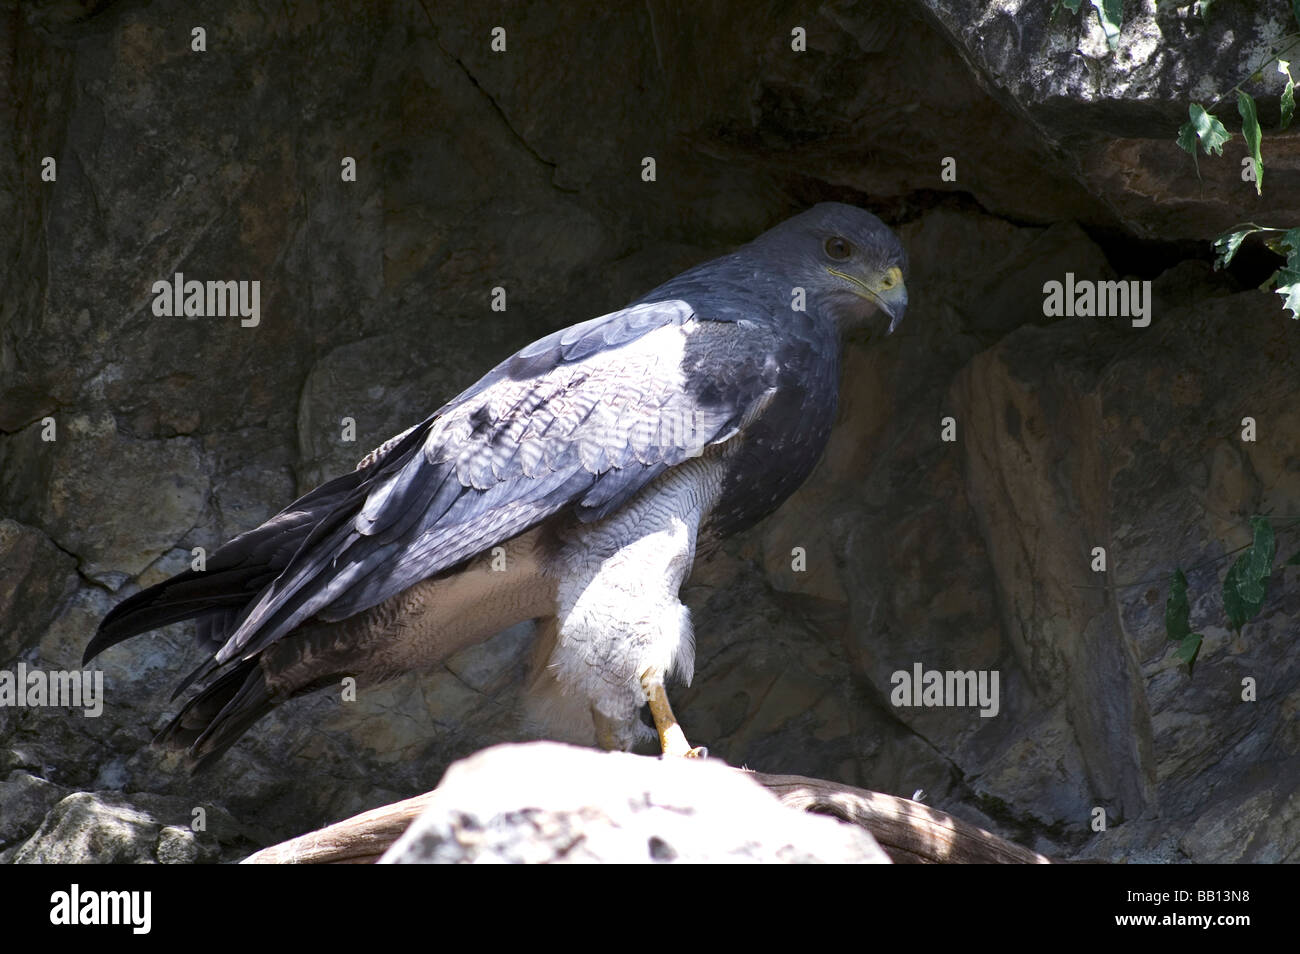 Buzzard.Black-chested Buzzard Eagle 'Geranoaetus melanoleucus' Adult standing on a rock. - Stock Image